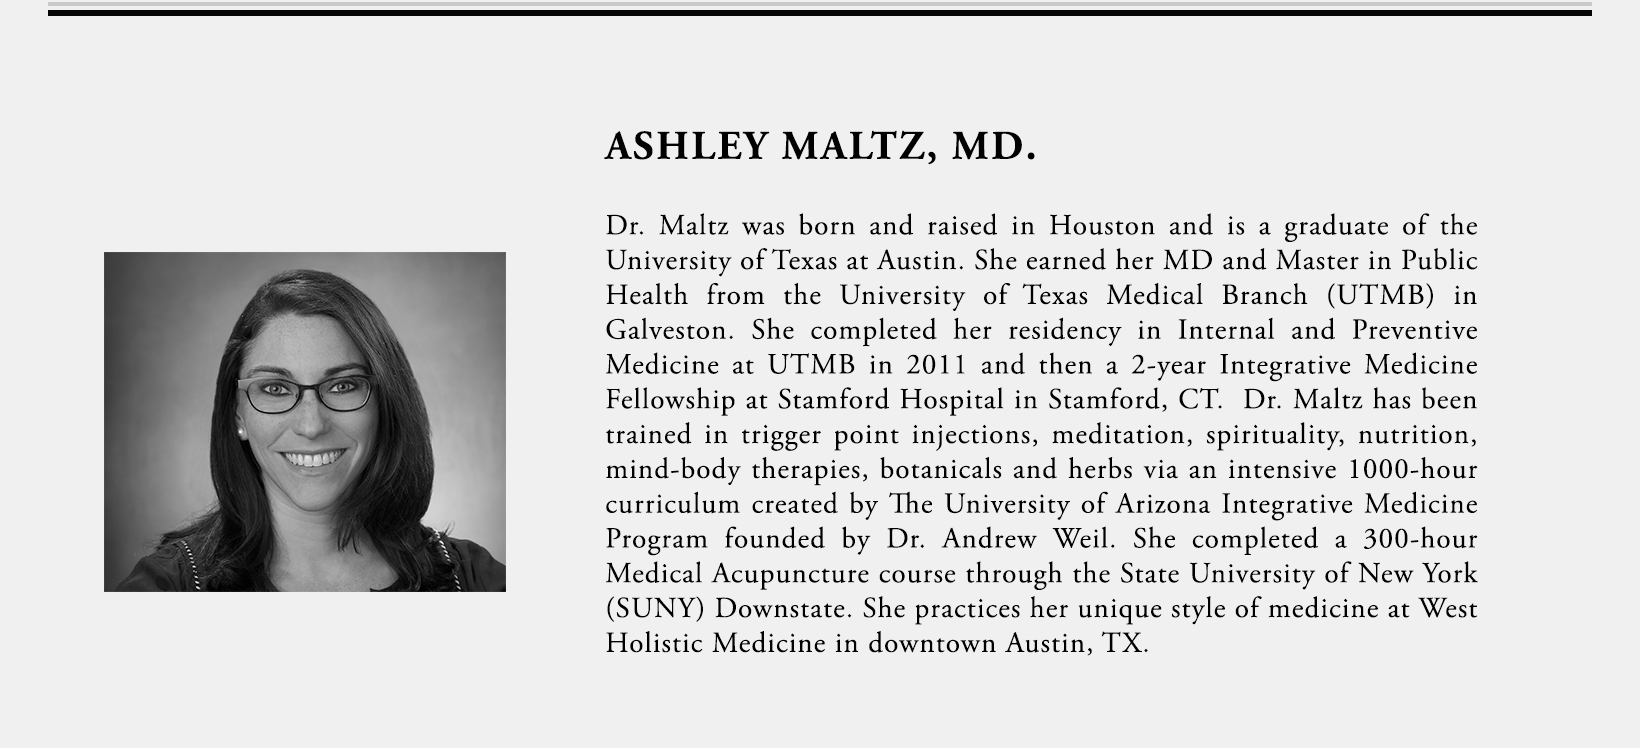 Ashley Maltz, MD.